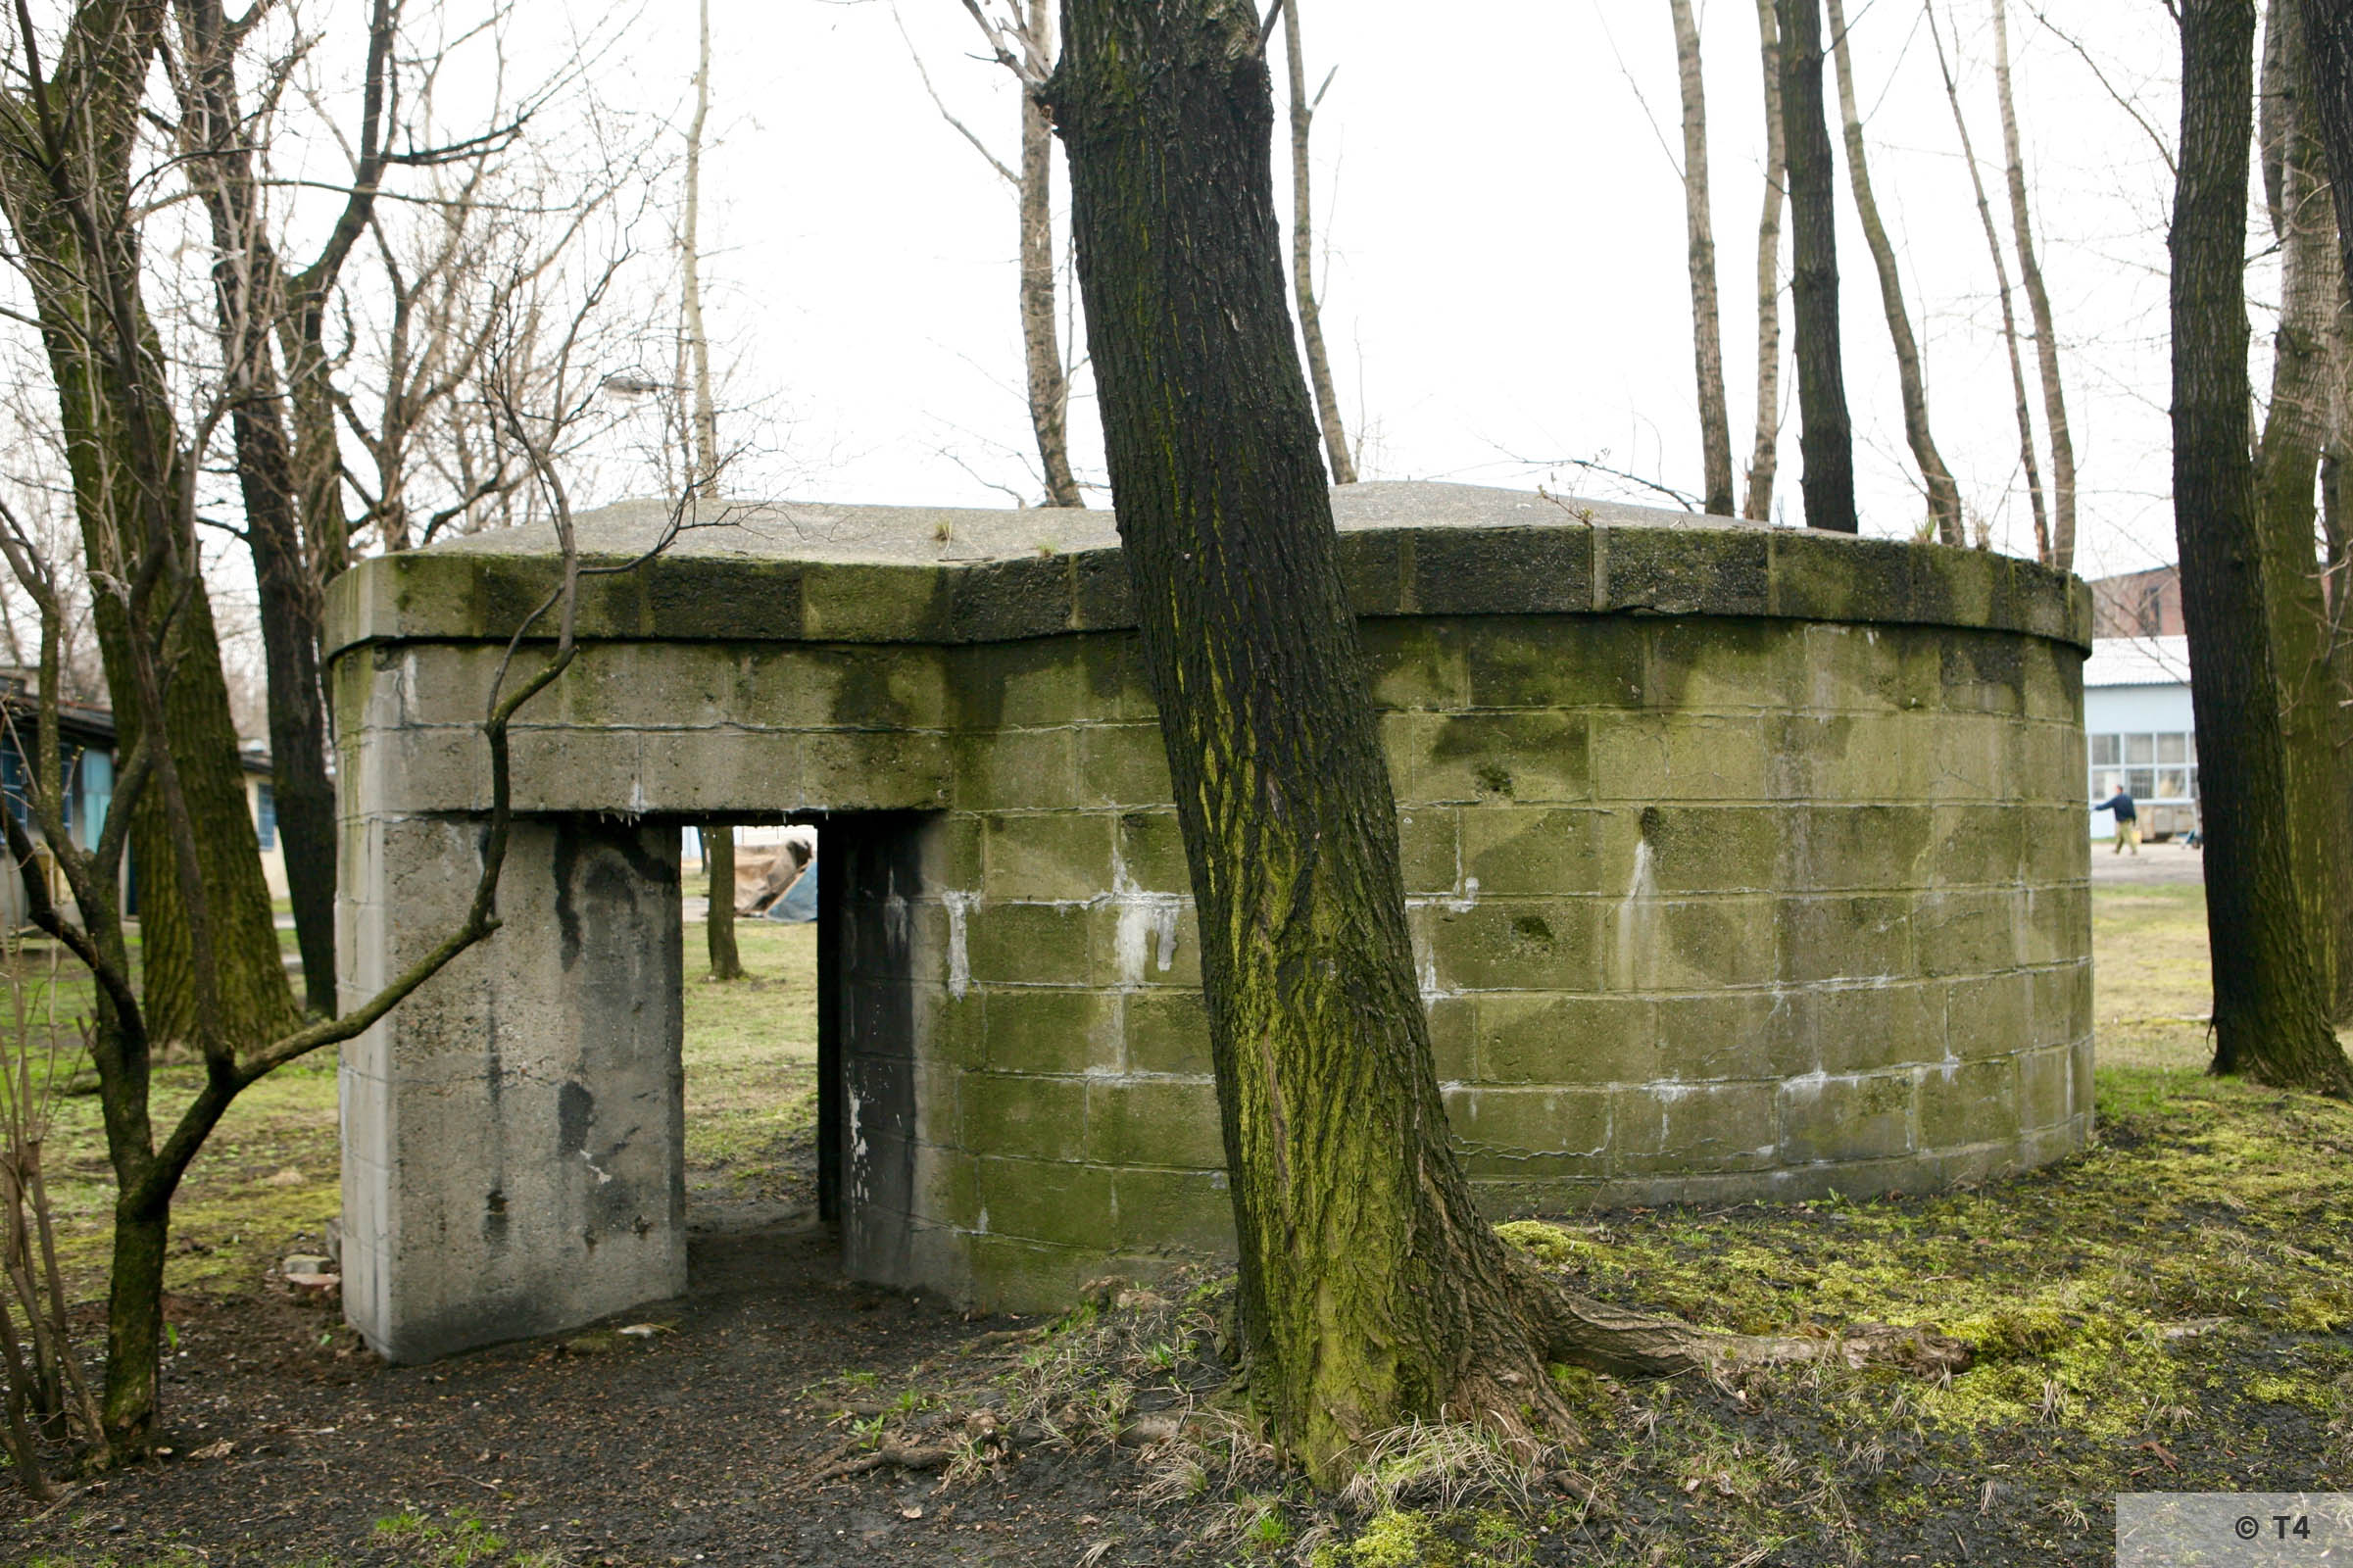 Air raid bunker in former SS area. 2007 T4 5105